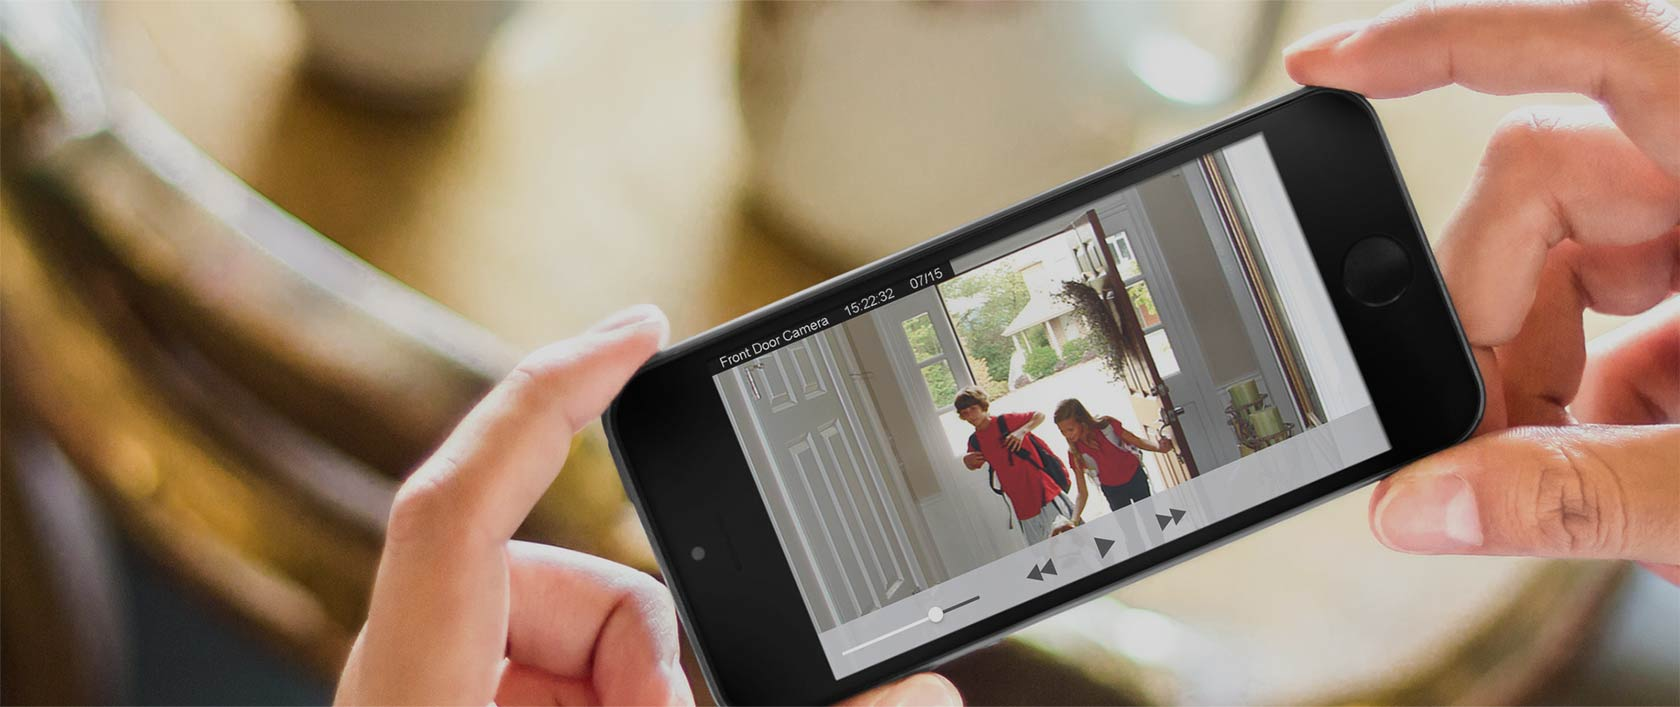 Best Home Security Cameras for Family Security